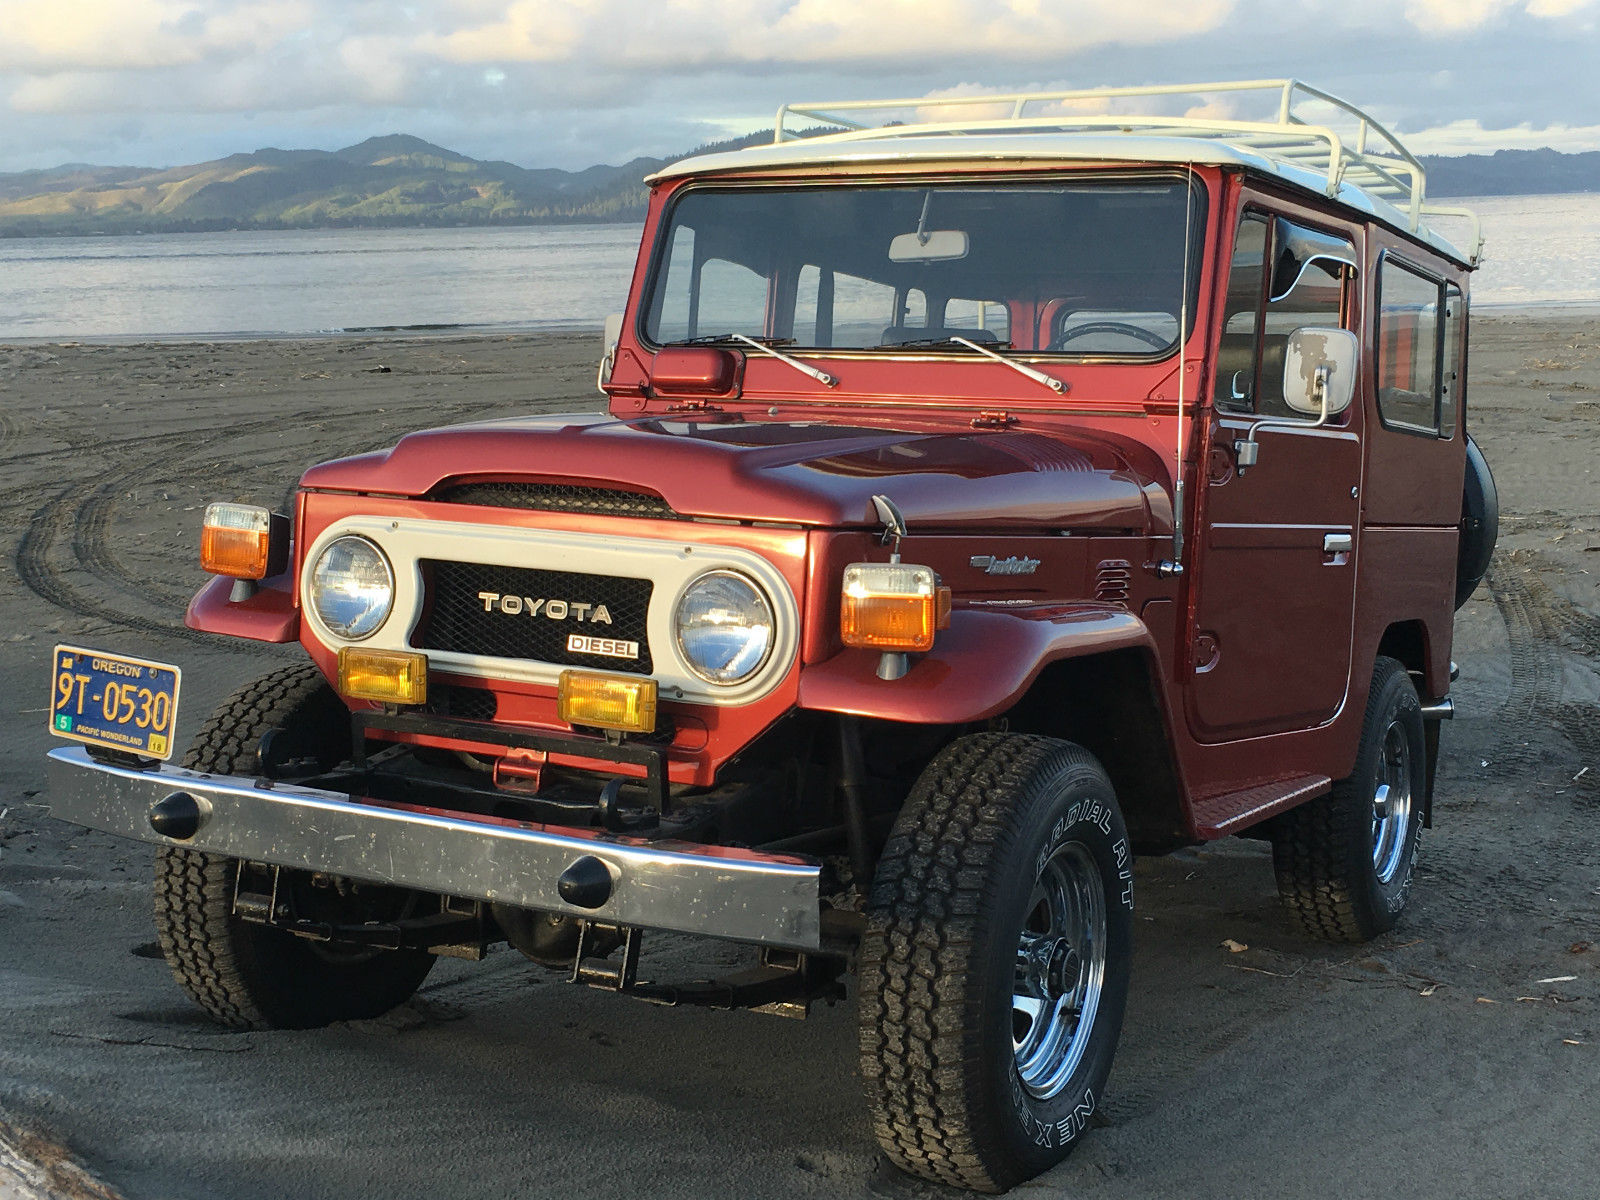 1979 toyota land cruiser bj40 diesel for sale. Black Bedroom Furniture Sets. Home Design Ideas